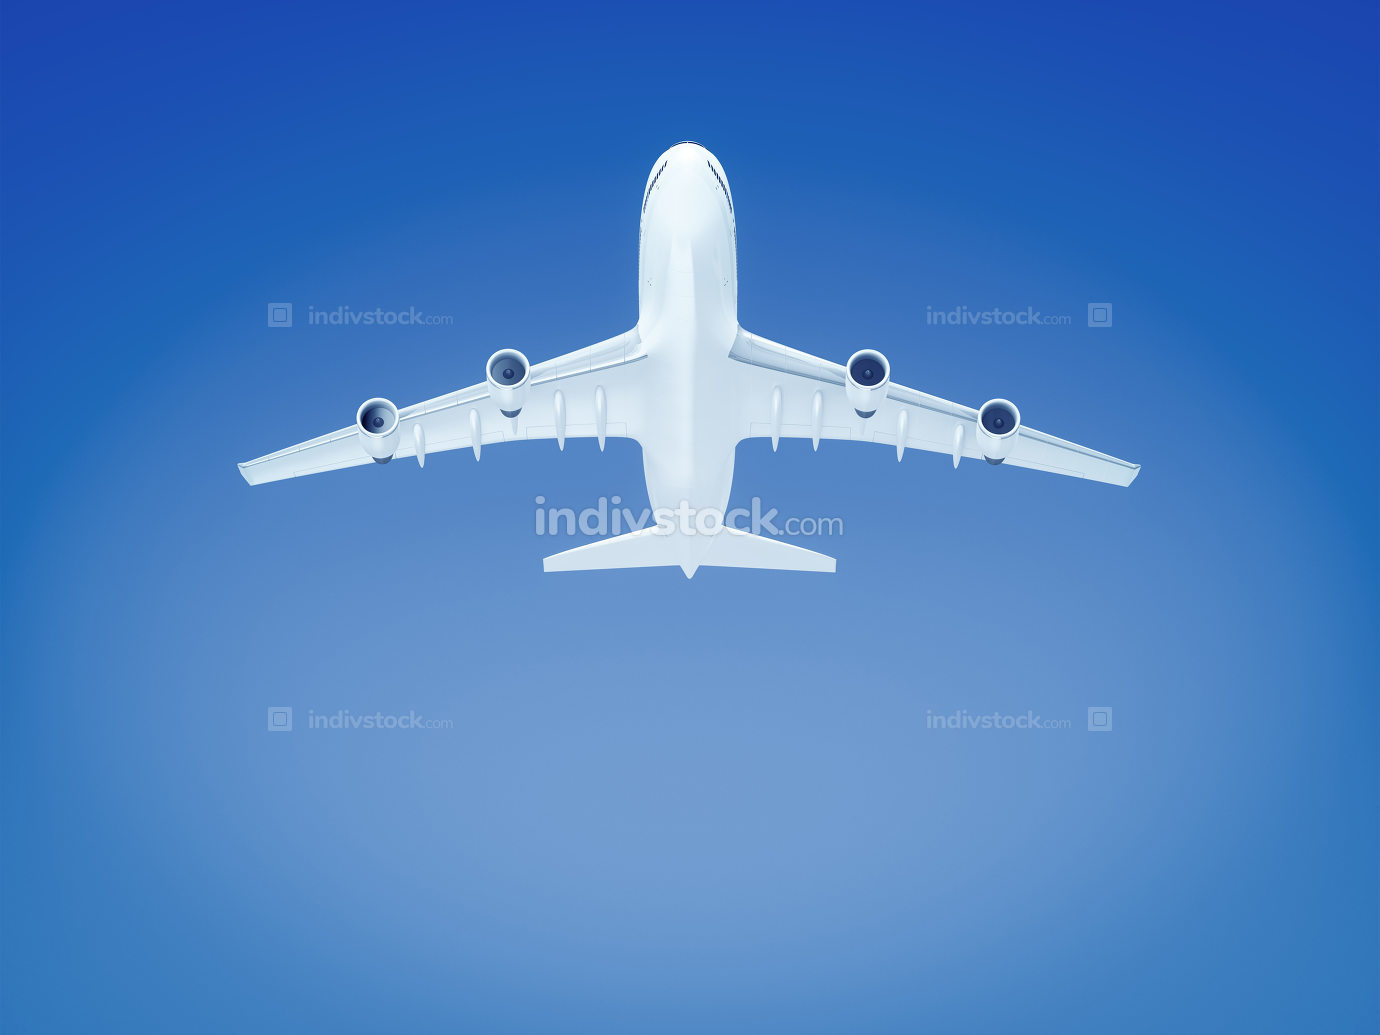 big airplane in the blue sky background